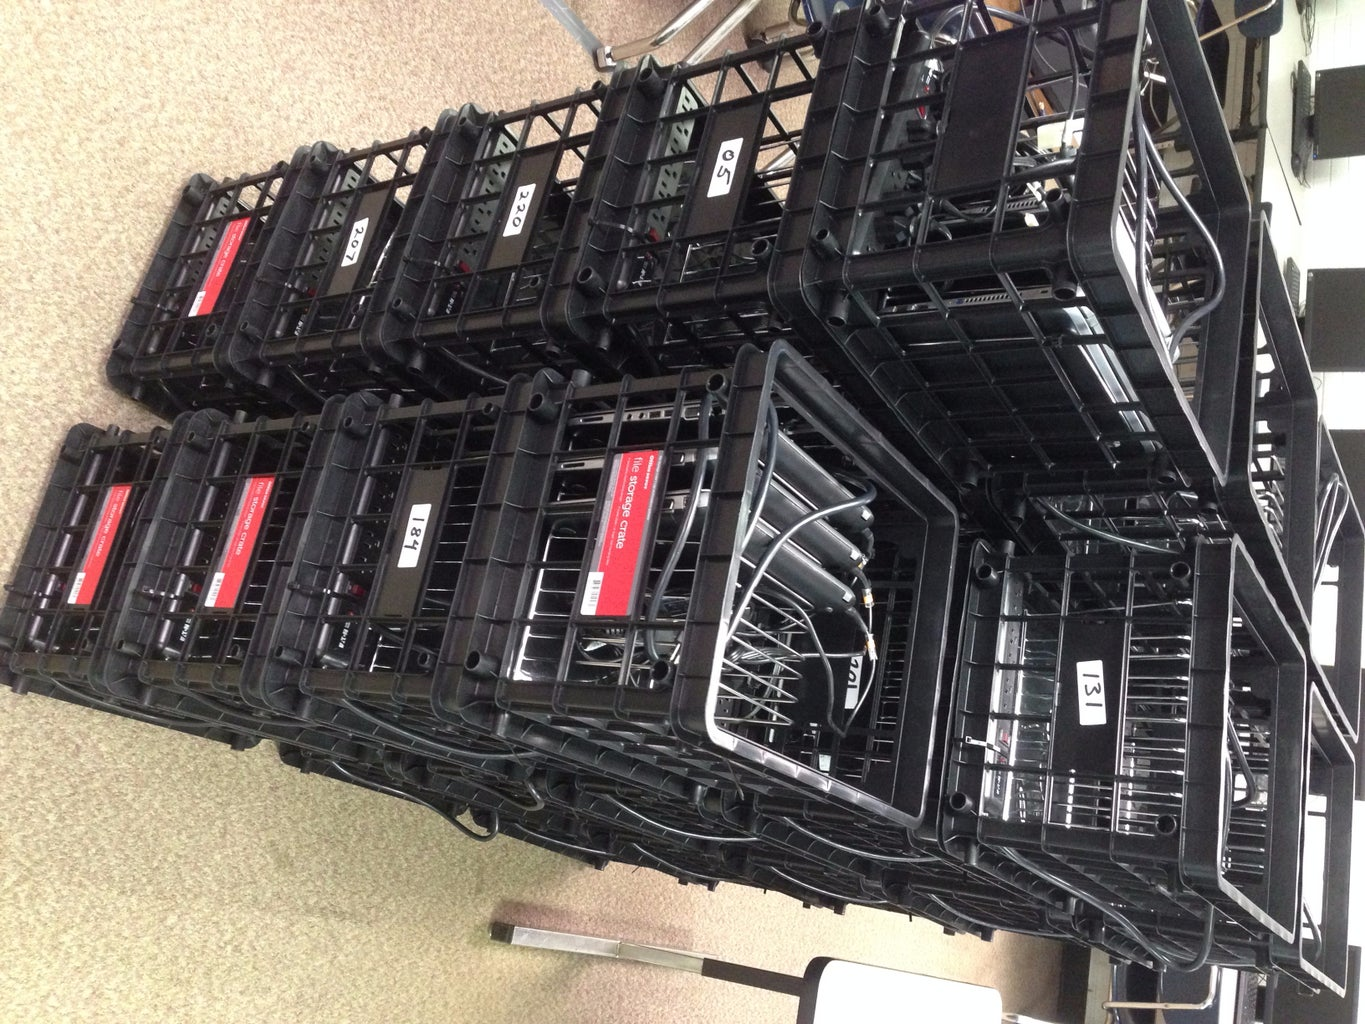 Laptop Charging Crate for Classrooms